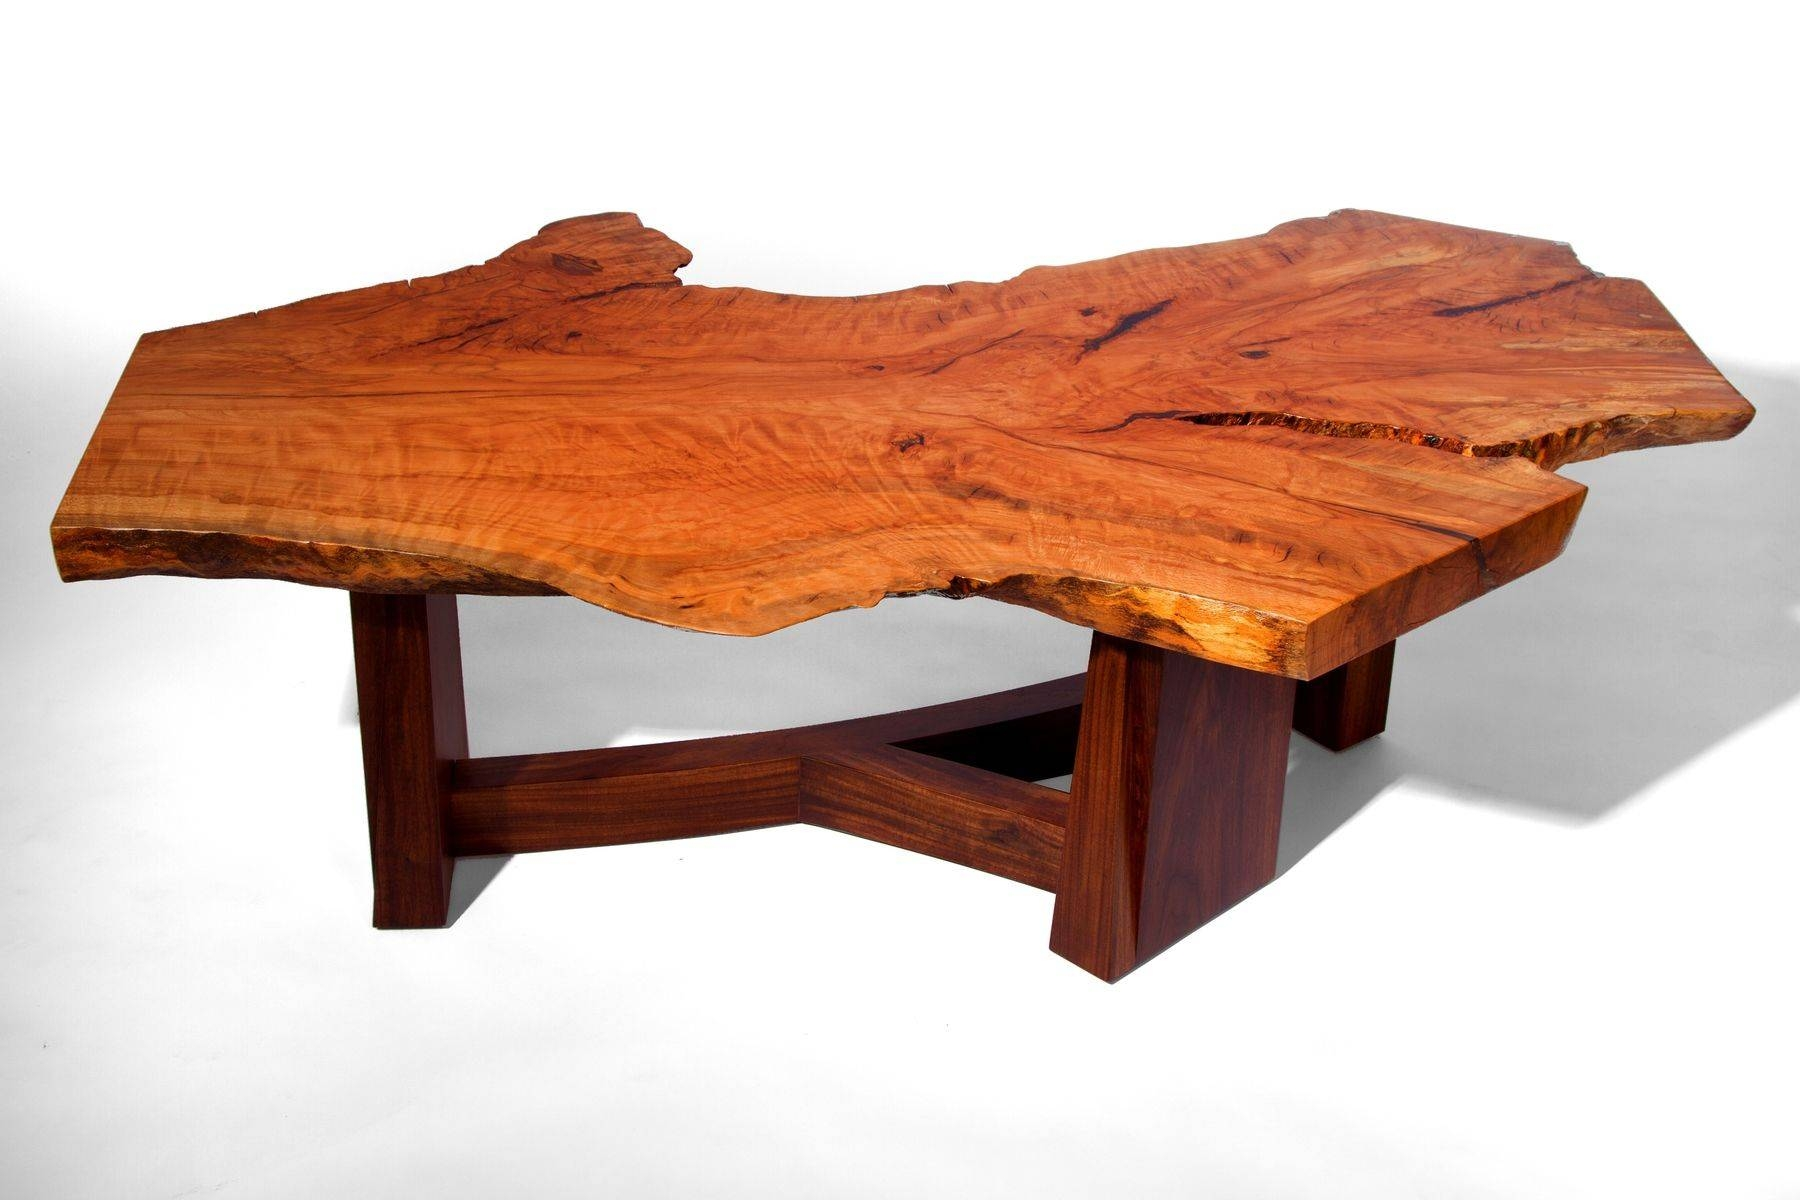 Hand Made Live Edge Beech Slab Coffee Tablej. Holtz Furniture inside Beech Coffee Tables (Image 19 of 30)